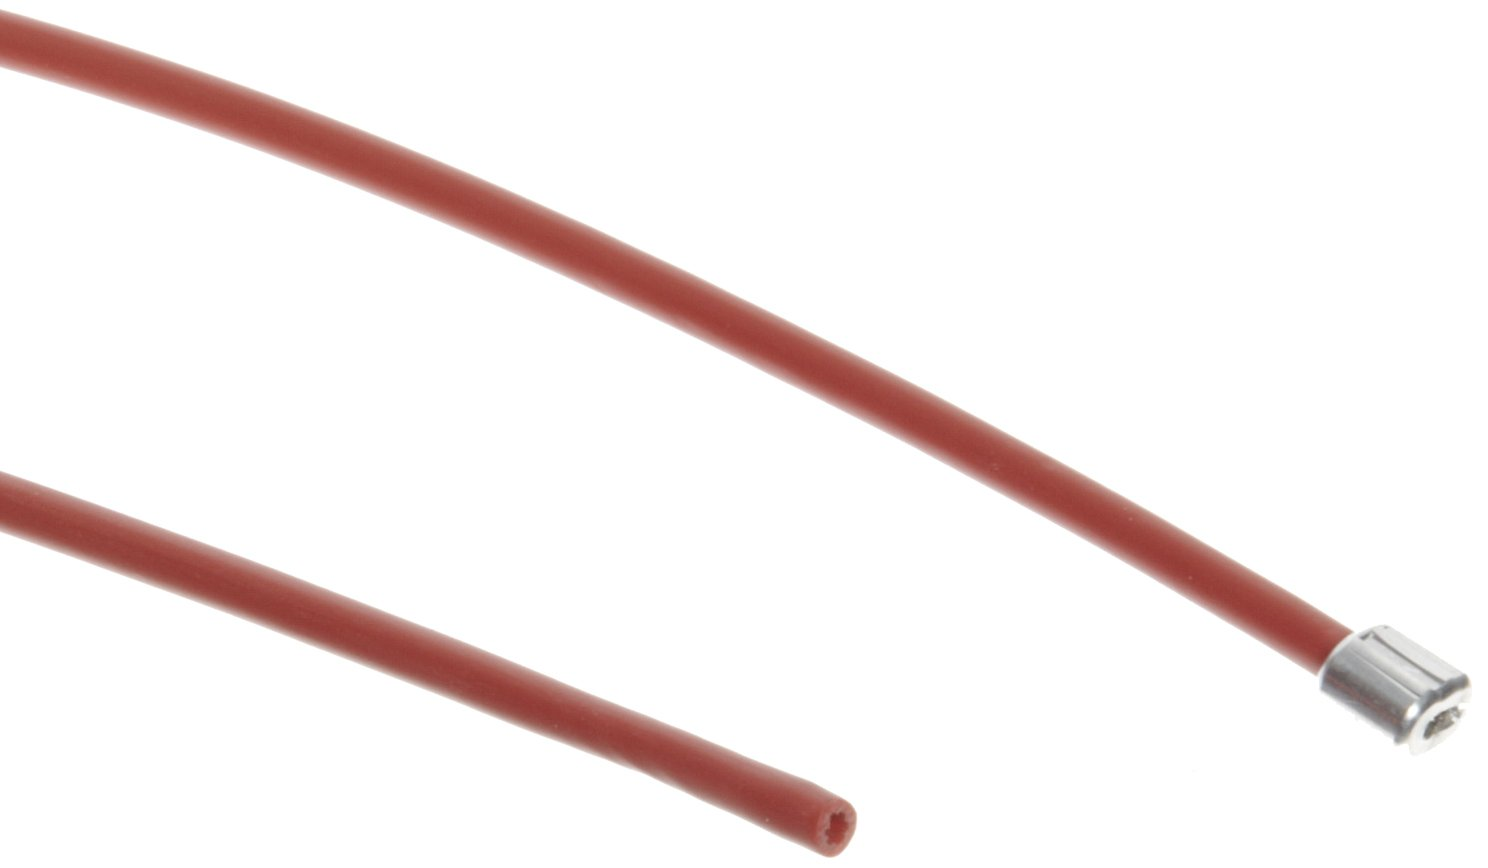 Accuform KDD635 15-ft. Nylon-Coated Steel Cable For Use With KDD630 STOPOUT Cinch Cable Lockout, Red